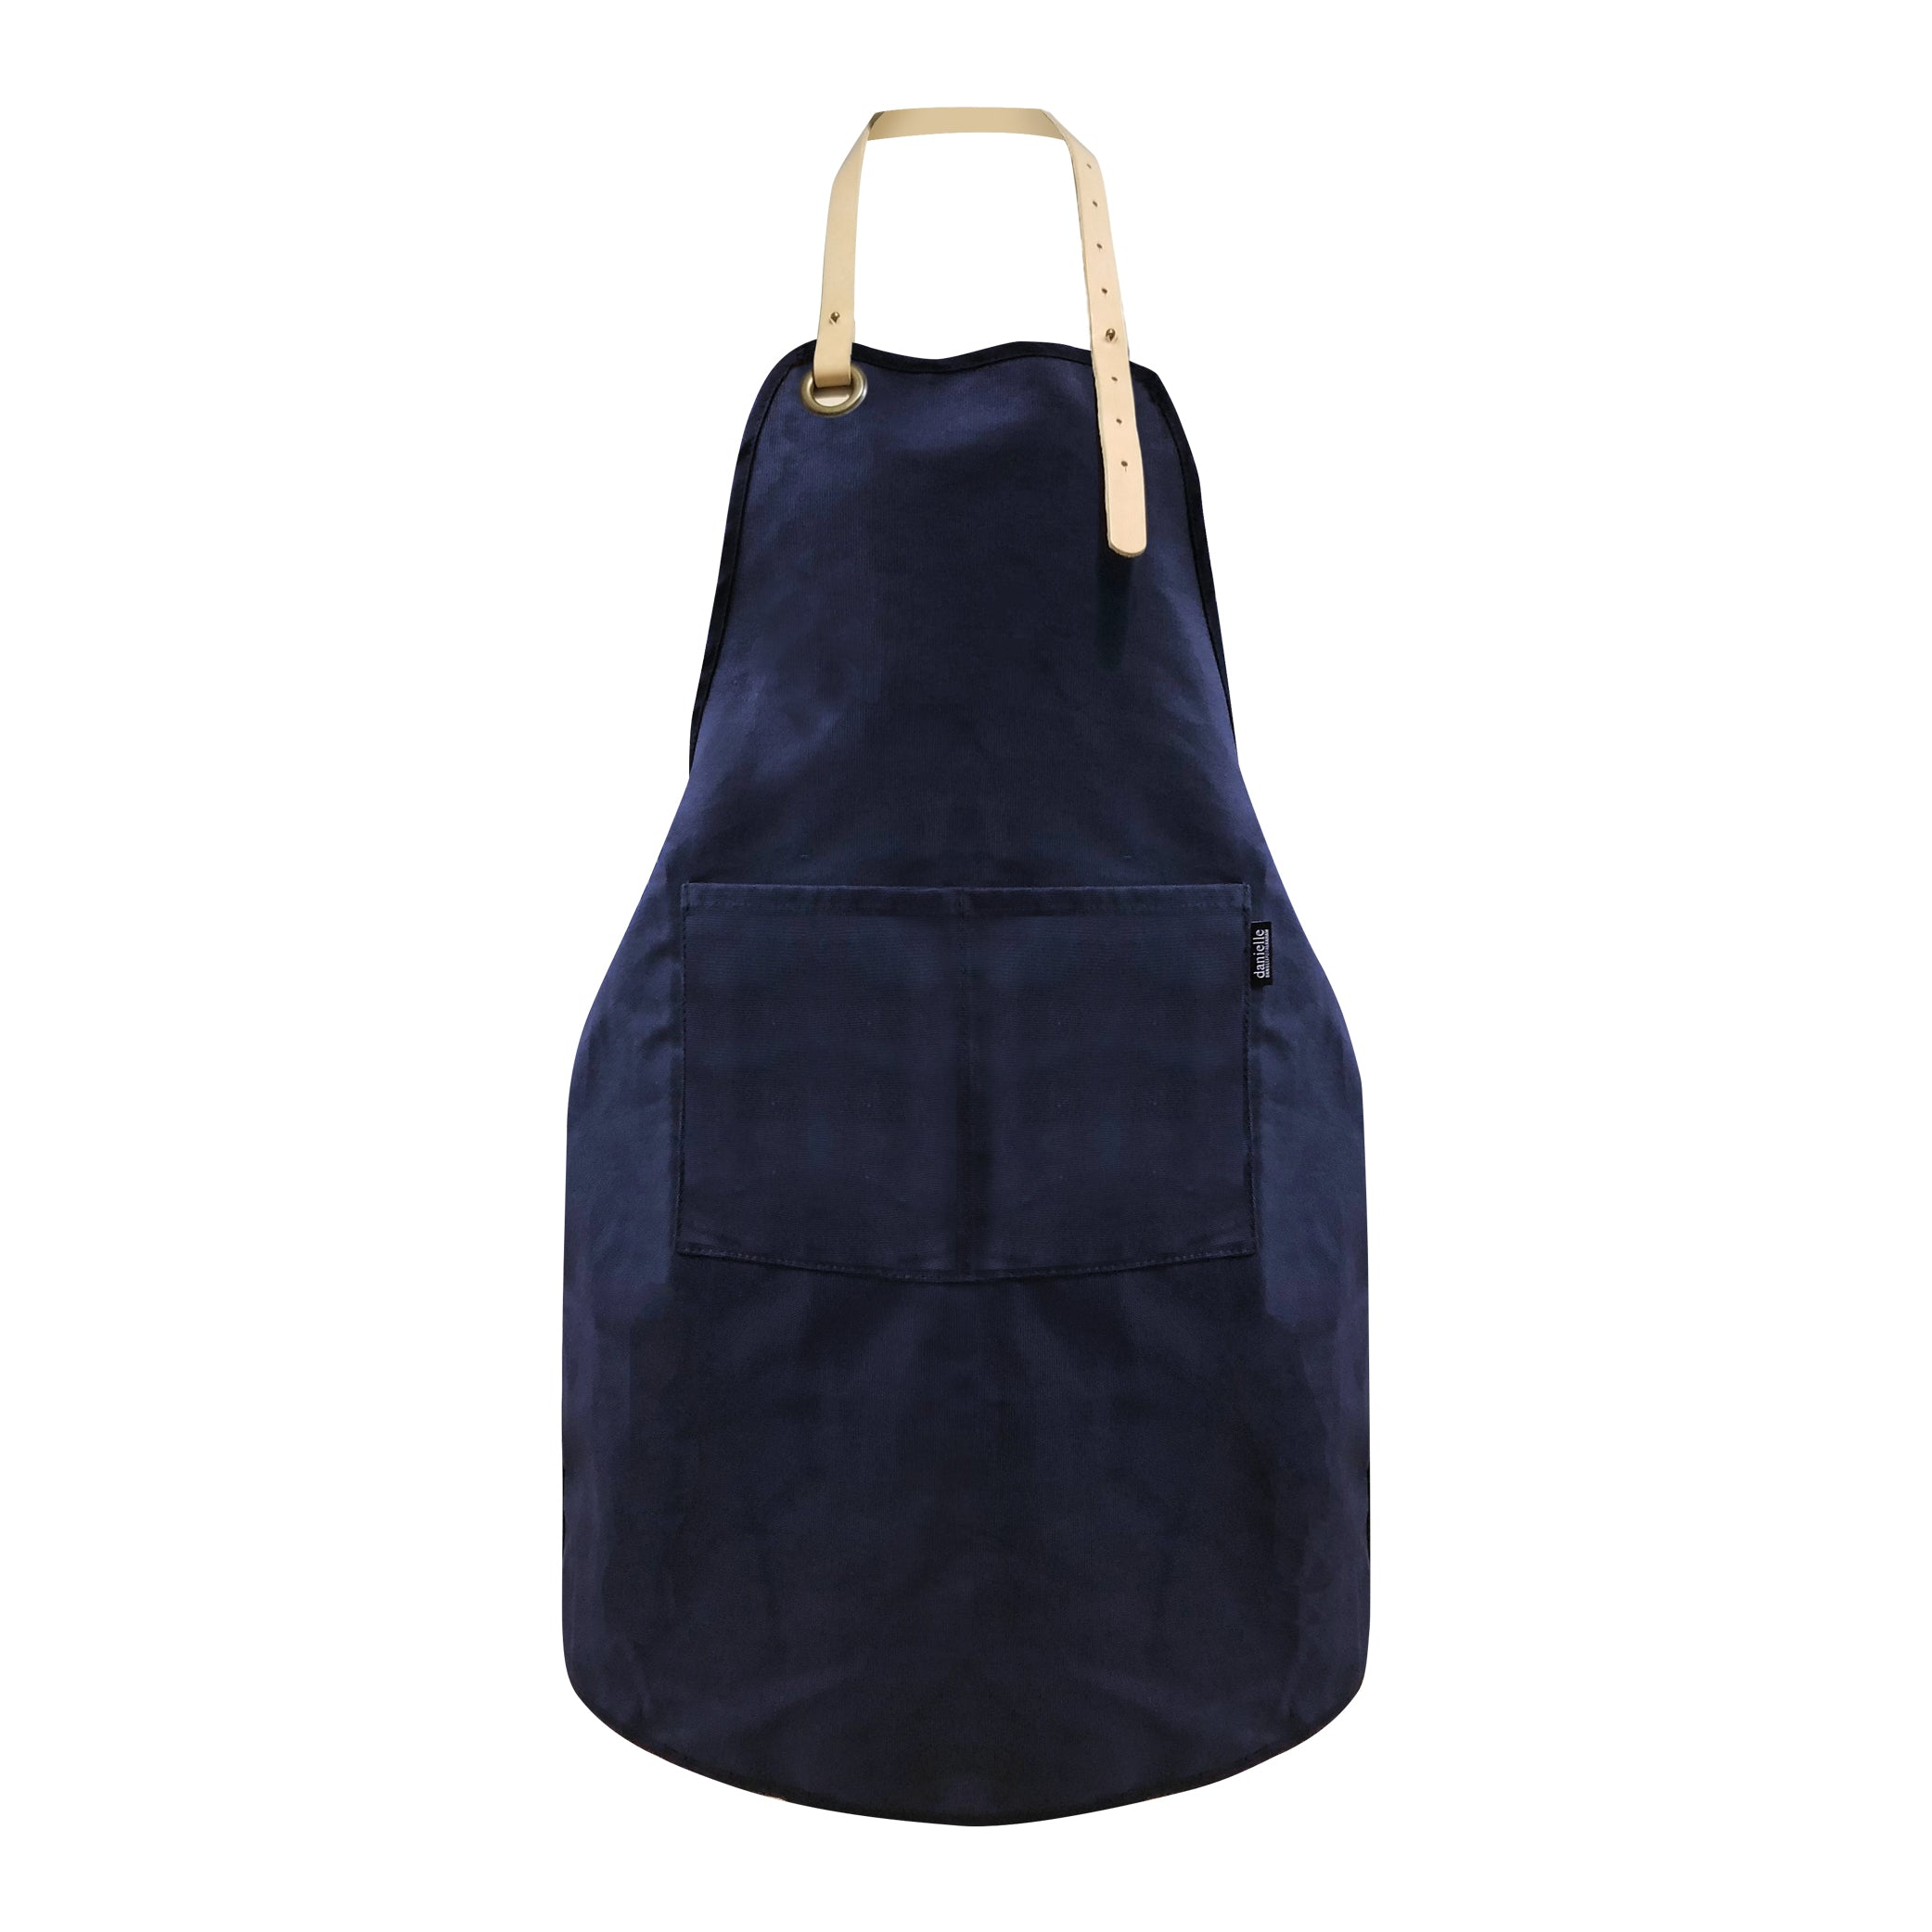 Elite Apron with 100% Genuine Leather Strap (Detachable Strap)